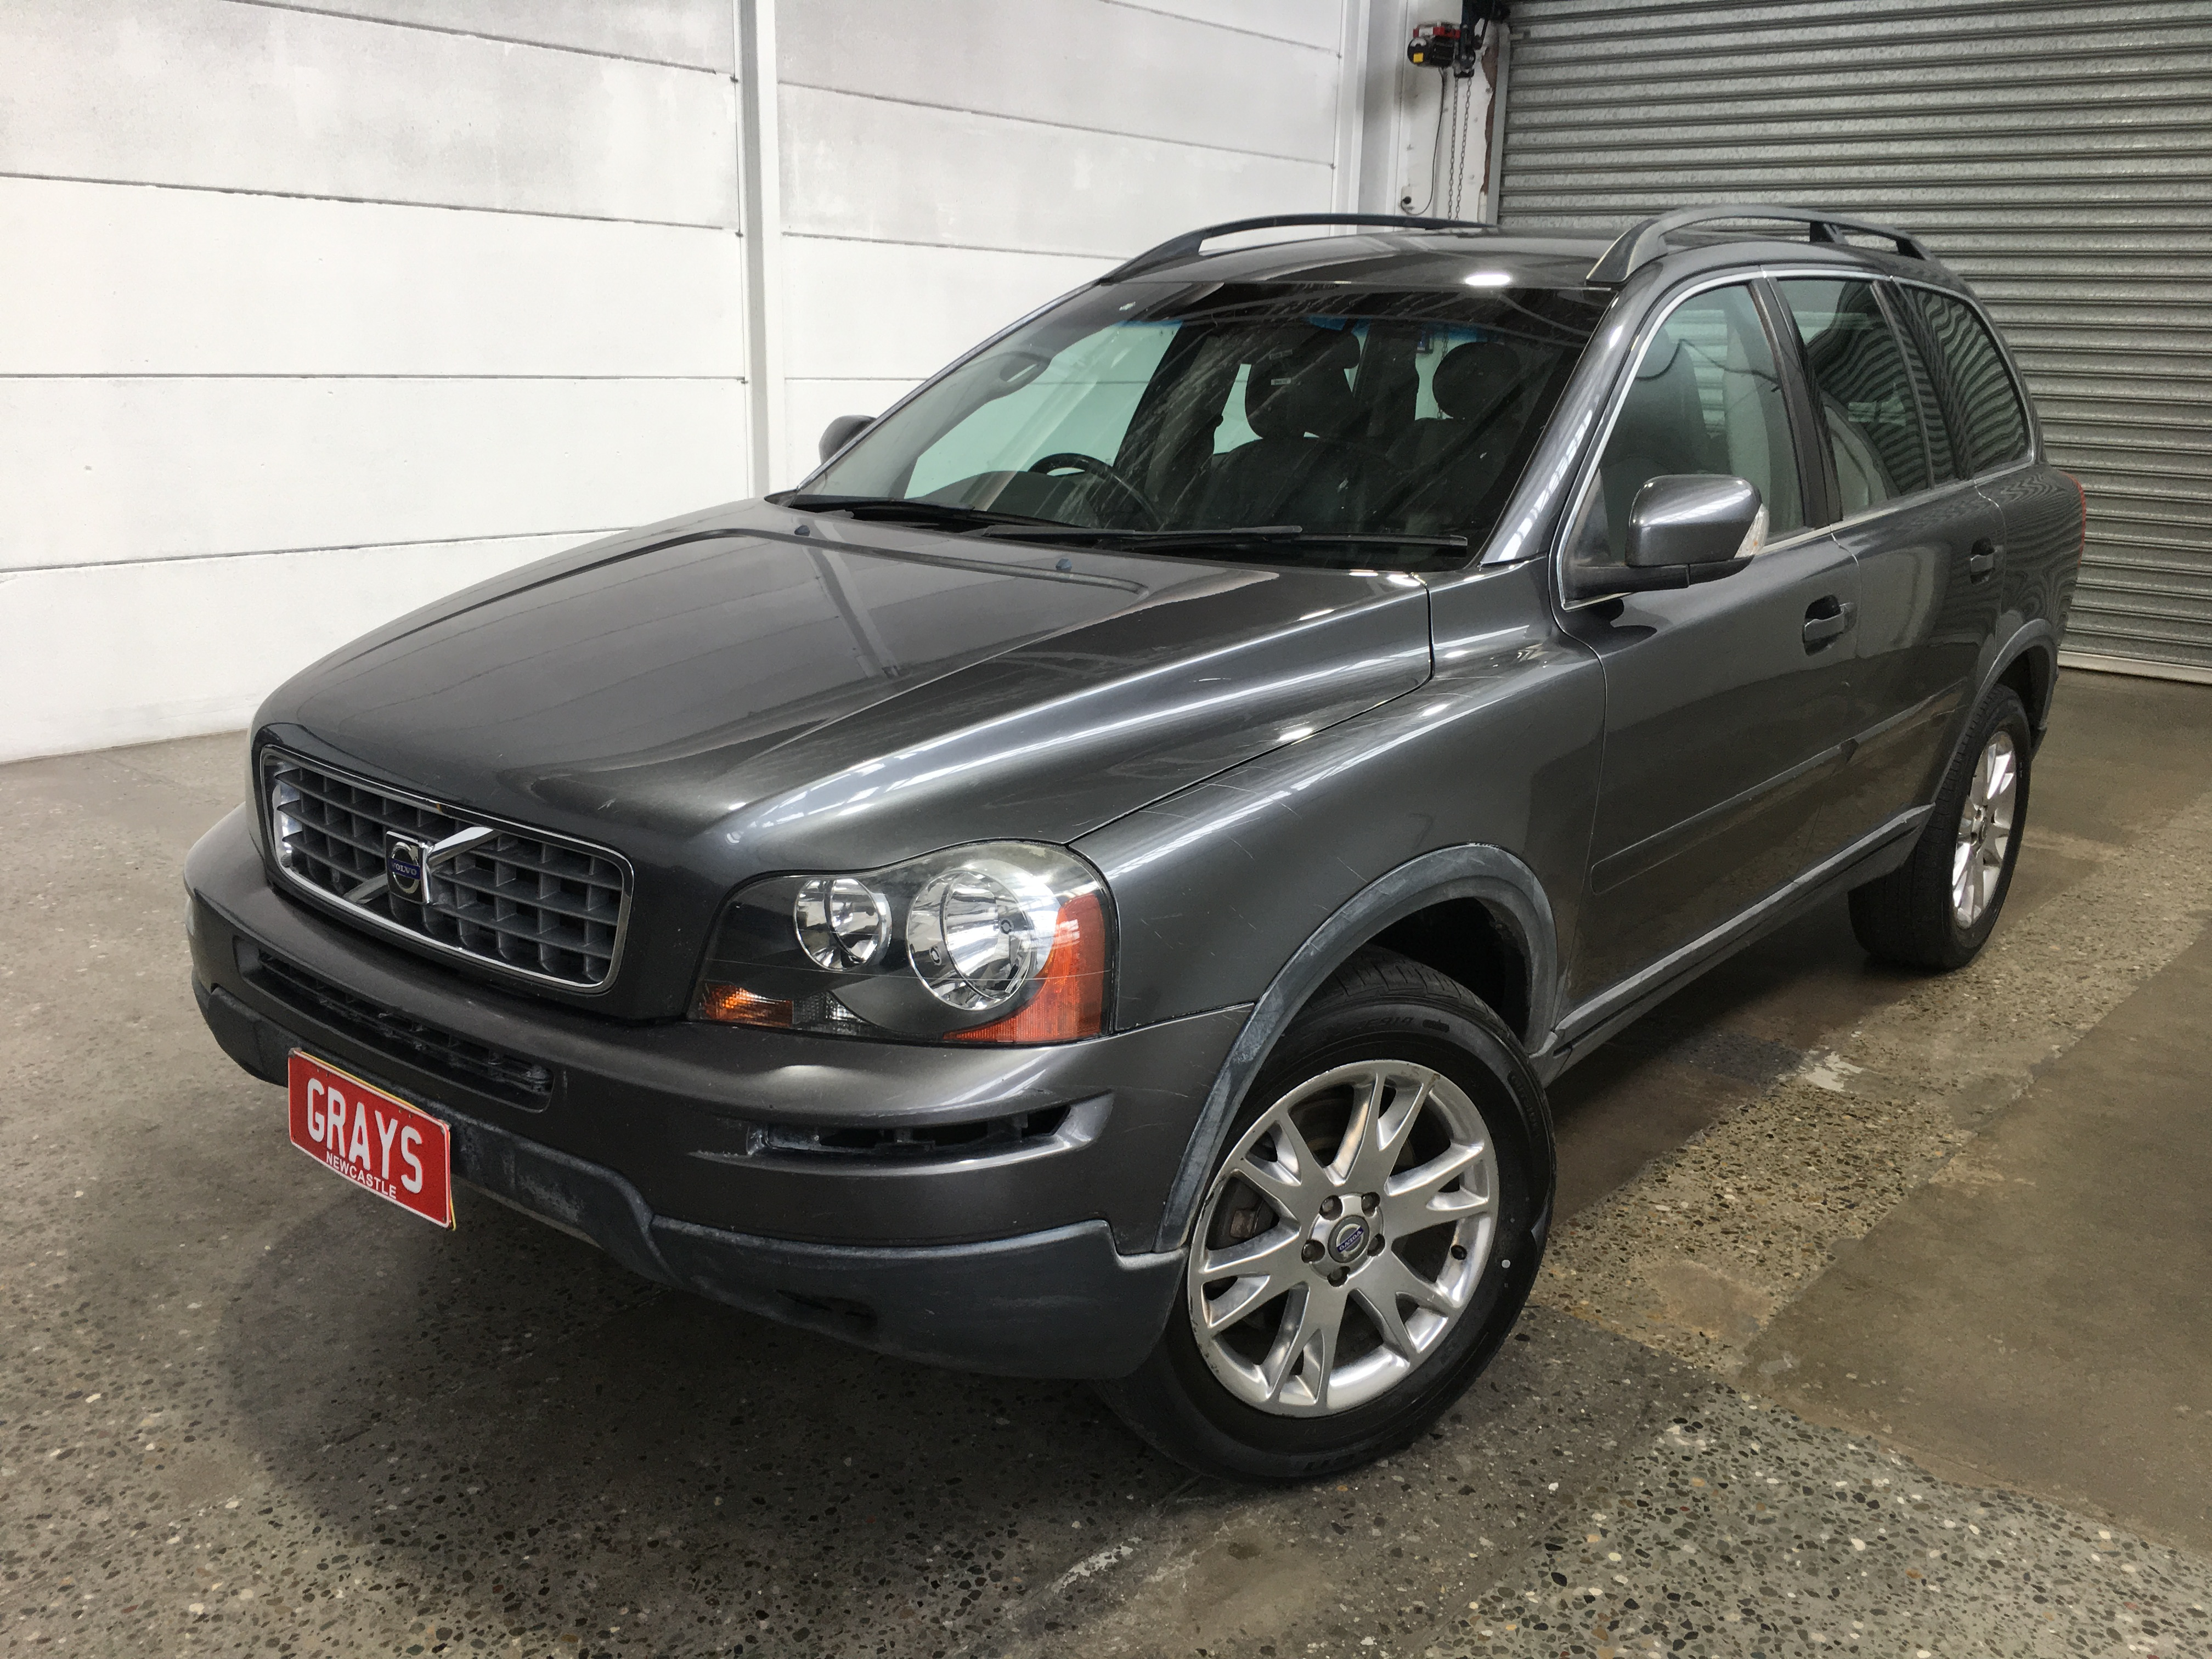 2006 Volvo XC90 Lifestyle Edition (LE) Automatic 7 Seats Wagon